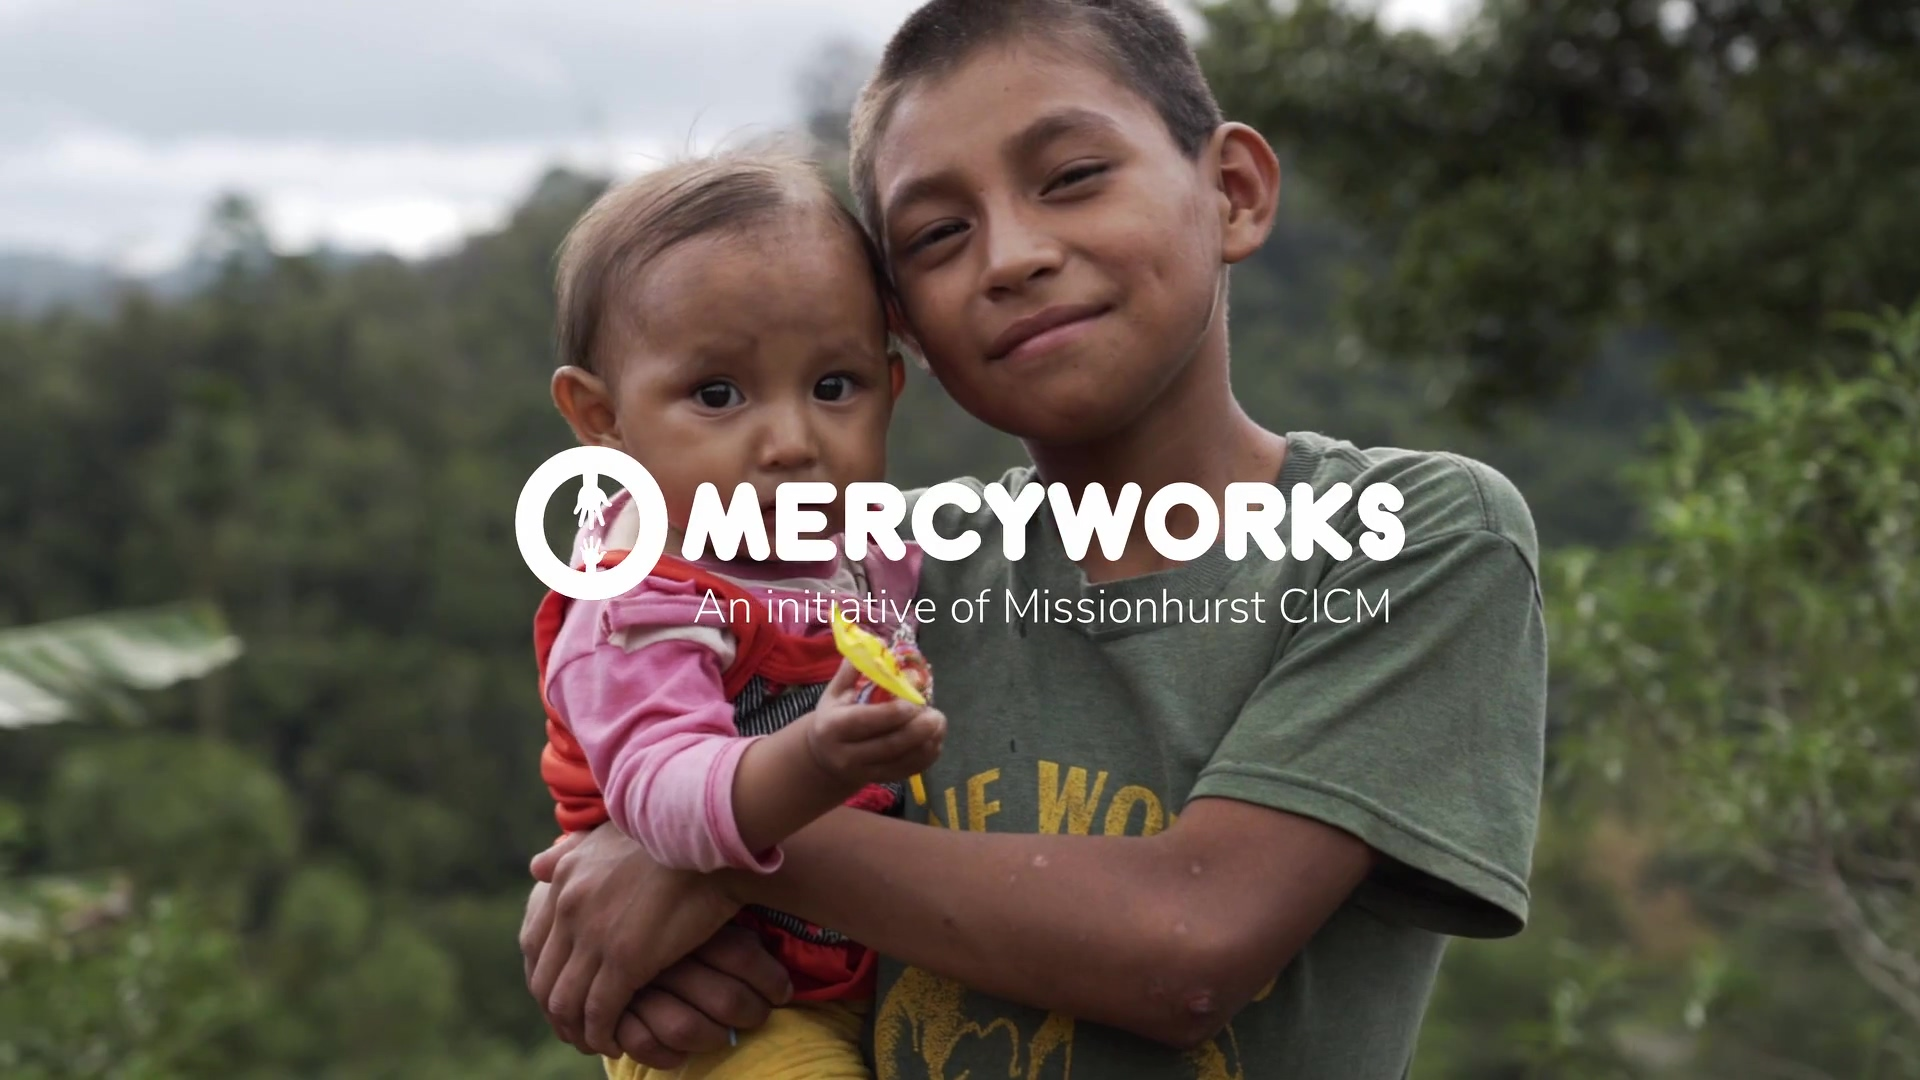 MercyWorks Promo_Export 4